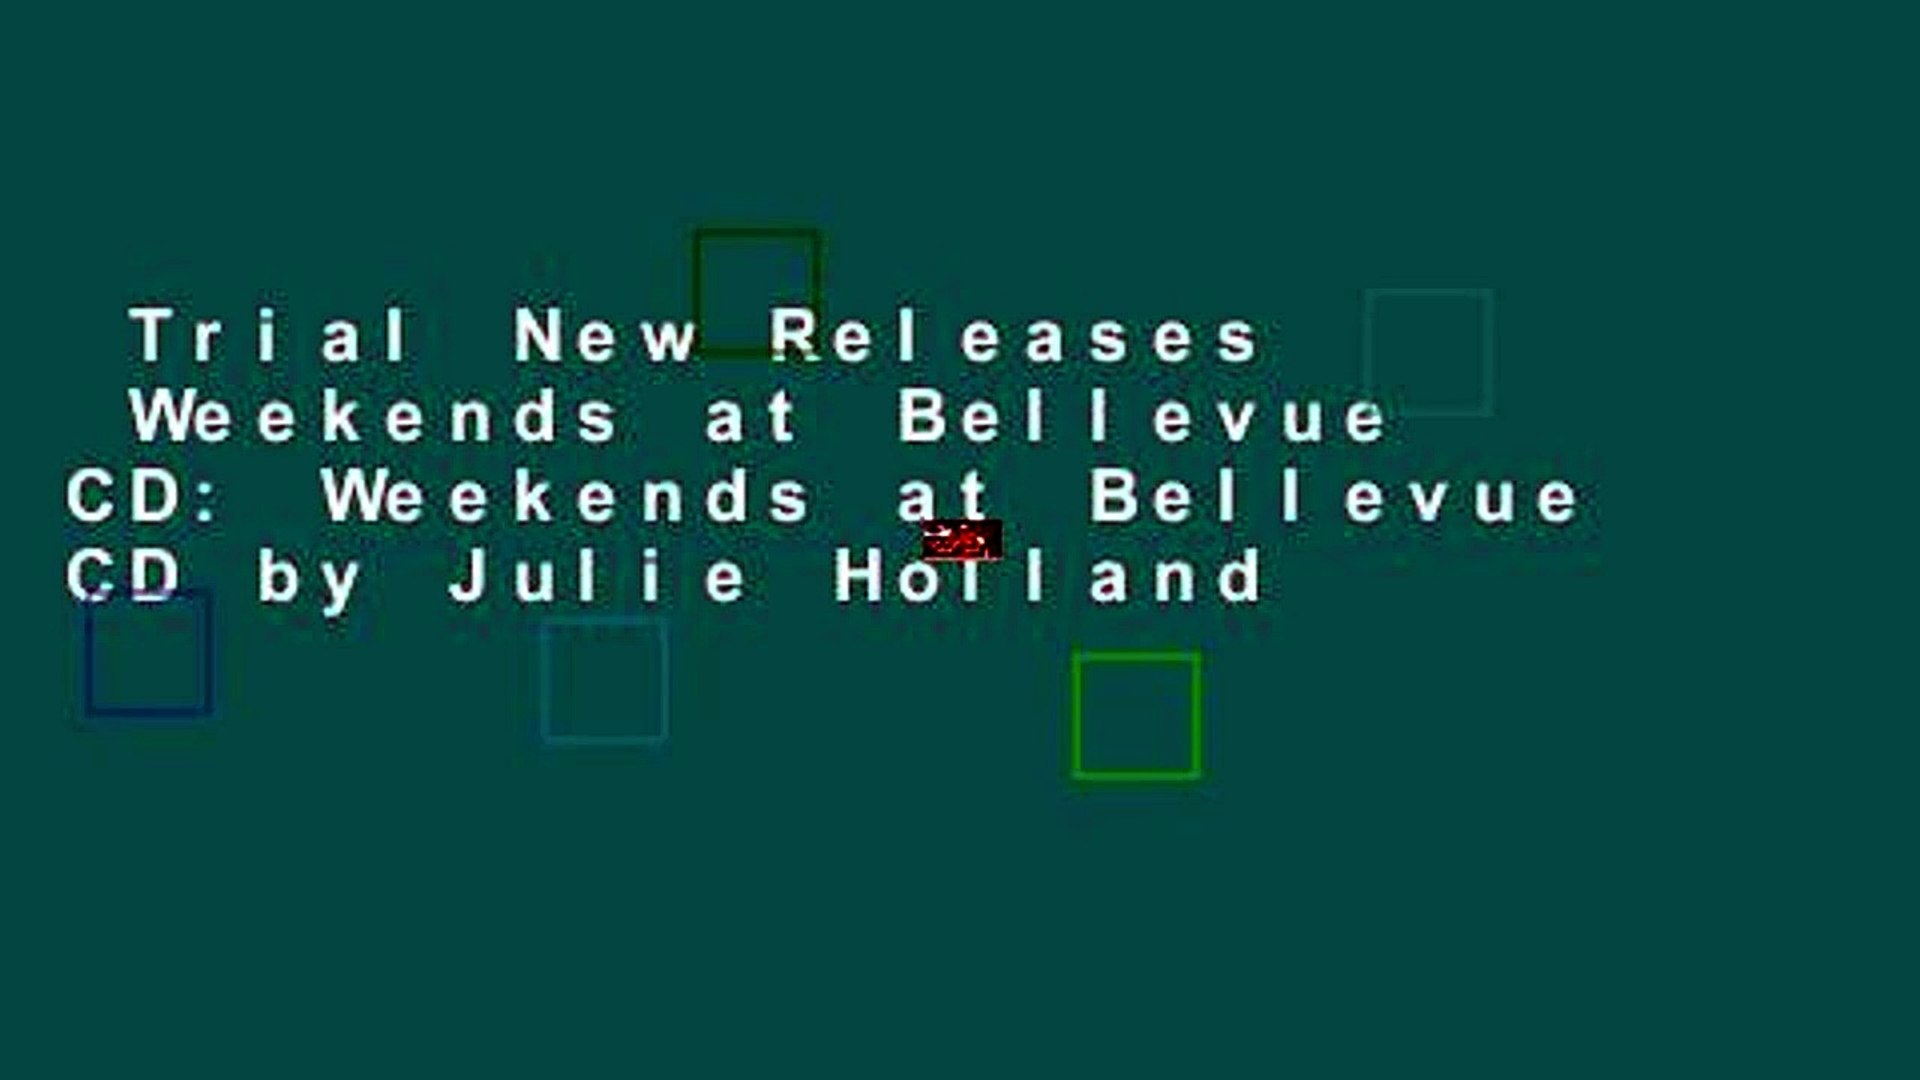 Trial New Releases Weekends at Bellevue CD: Weekends at Bellevue CD by  Julie Holland